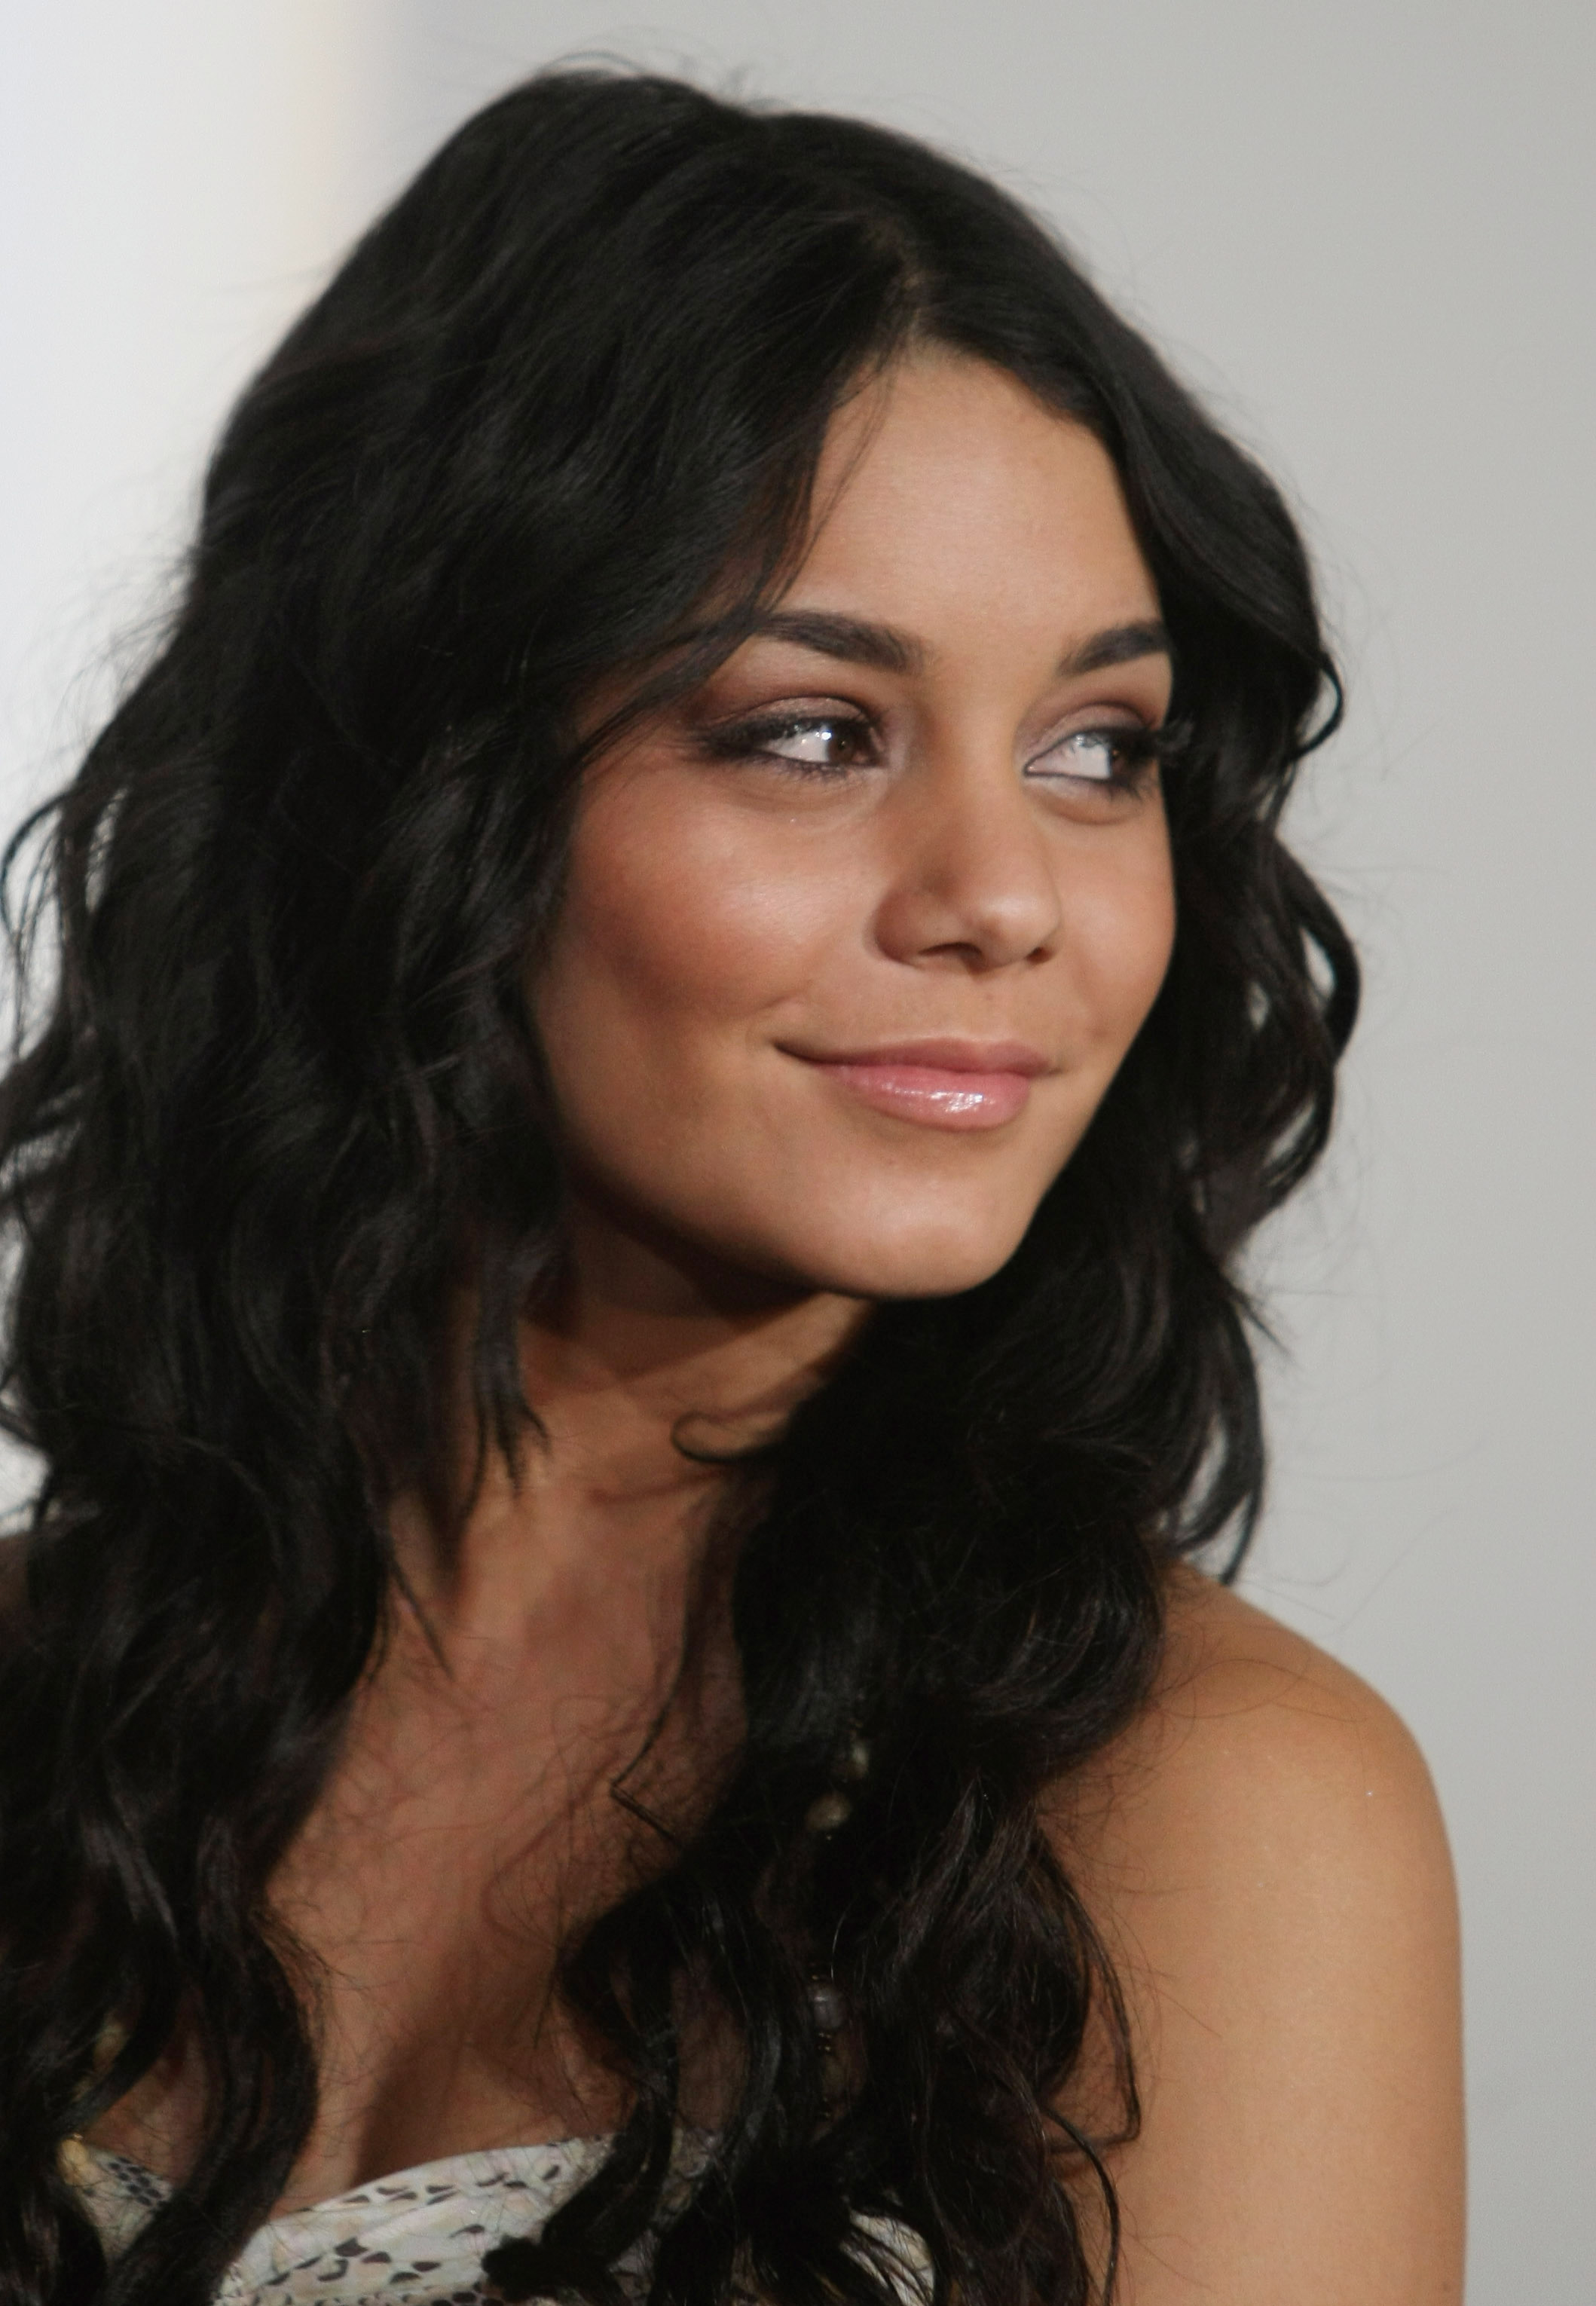 28785_Celebutopia-Vanessa_Hudgens-High_School_Musical_3_Senior_Year_German_premiere_in_Munich-08_122_785lo.jpg